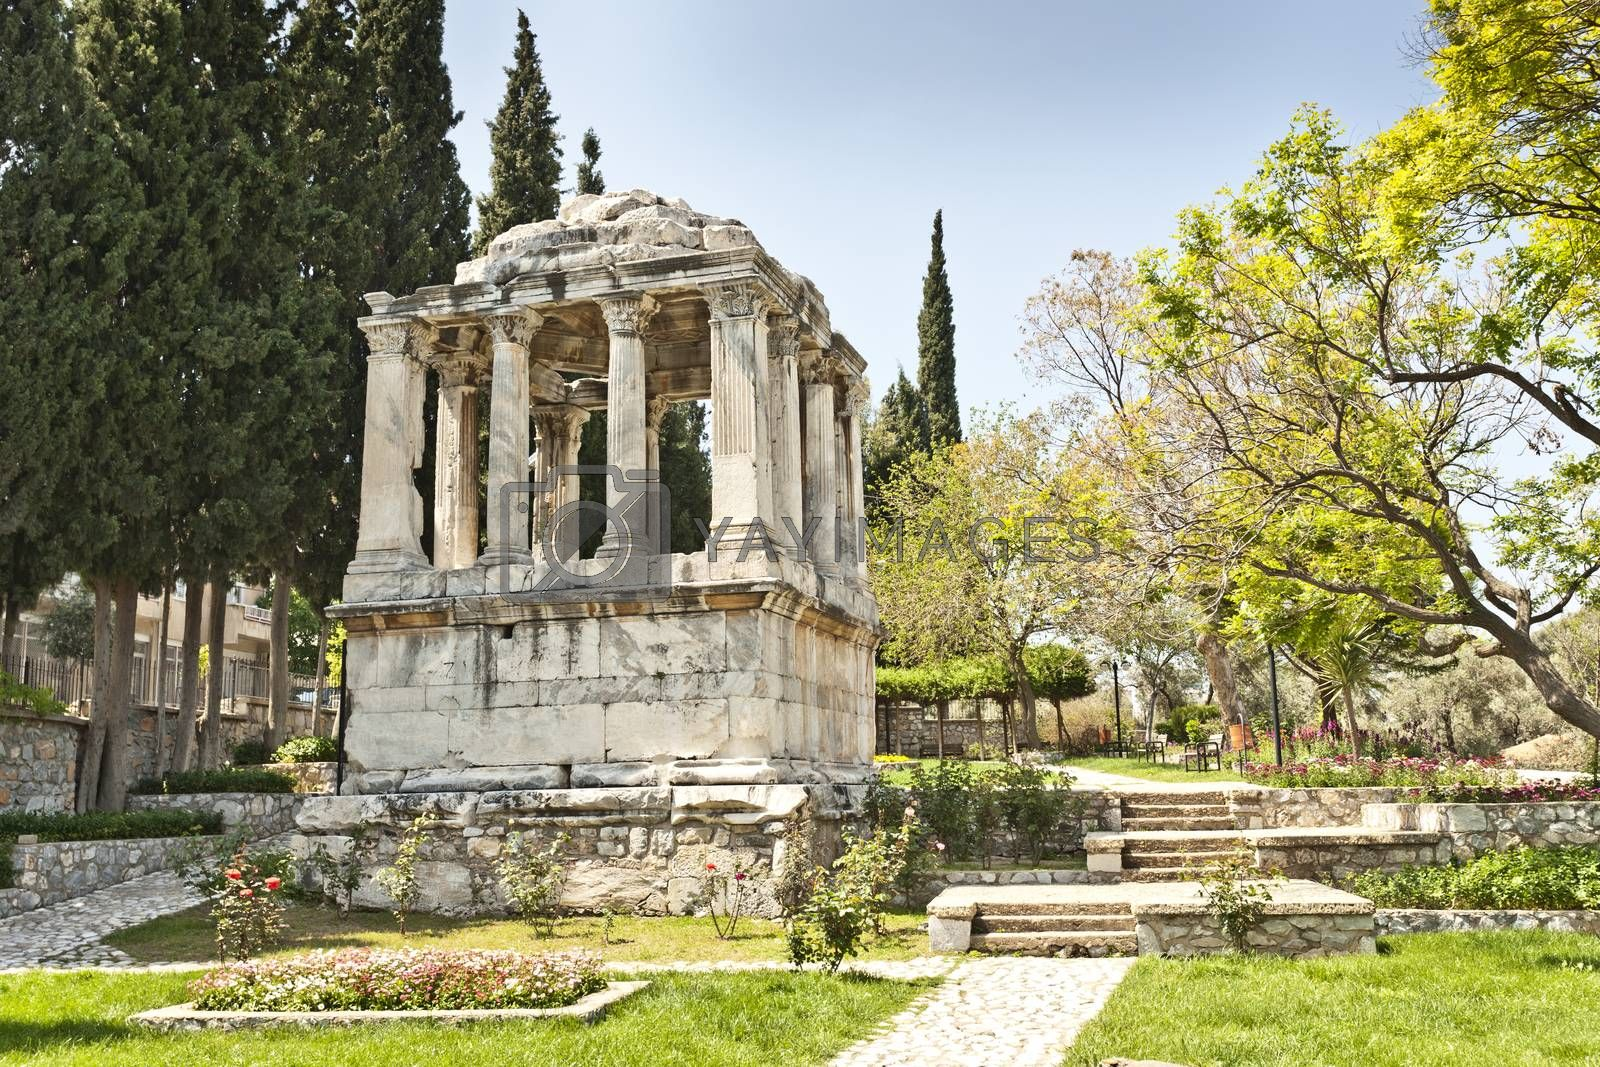 """The Mausoleum lies in the Street of  gumuskesen and is well known for being a Roman version of the Halikarnassos Mausoleion, which was recognized as one of the seven wonders of the ancient era. Since the Mausoleum was constructed on the most attractive site in the Roman Necropolis, there was a principle that forced the owner of the building to be an important person for the city. Namely, the owner of this place was expected to be a noble man, a manager or a person recognized as the member of a royal family. This mausoleum, being an exemplary construction thanks to the embellishing stonemasonry and the plan schedule, was constructed in the 2nd century AD, when the Antonins were ruling over Rome. The mausoleum consists of three divisions: (1) the ground floor that serves as a funerary chamber, (2) the second floor that represents the peristillium and the (3) pyramidal top floor. The walls of the ground floor consist of perfectly caved large marble blocks. The coating style of the gate in this construction is based on the same coating technique that was used for the Baltali Gate. The roof of the mausoleum was enriched from one end until the other thanks to relief plants and flowers and geometric motives. People make effort so that the gumuskesen Mausoleum, which represents the Roman Period, takes its place in the """"Word Heritage List"""" that has been prepared by UNESCO."""